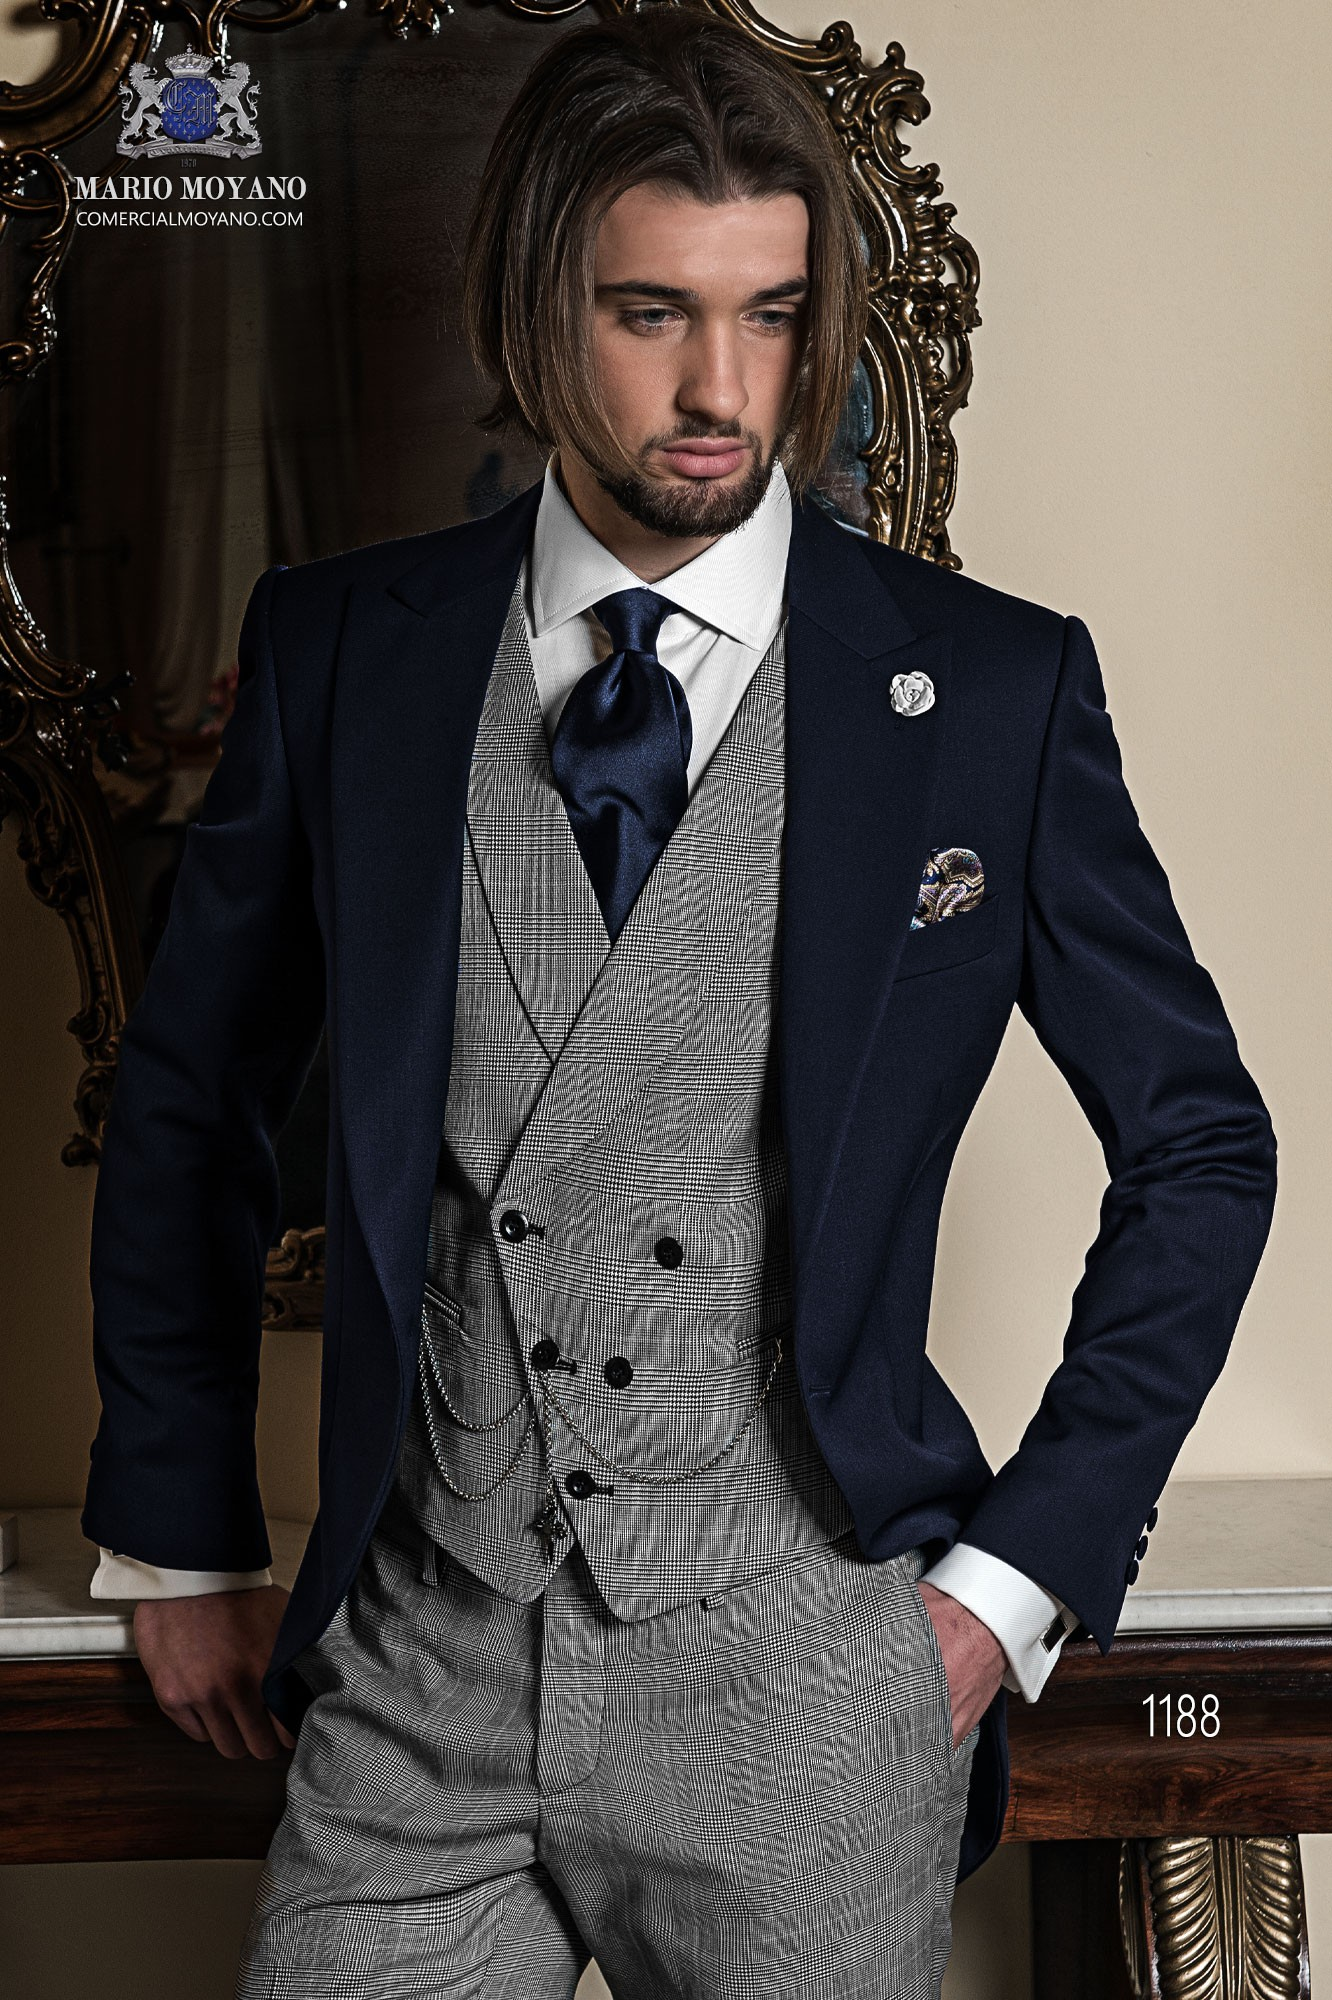 Italian bespoke blue short frock wedding suit, coordinated with pants prince of wales check, style 1188 Ottavio Nuccio Gala, Gentleman collection